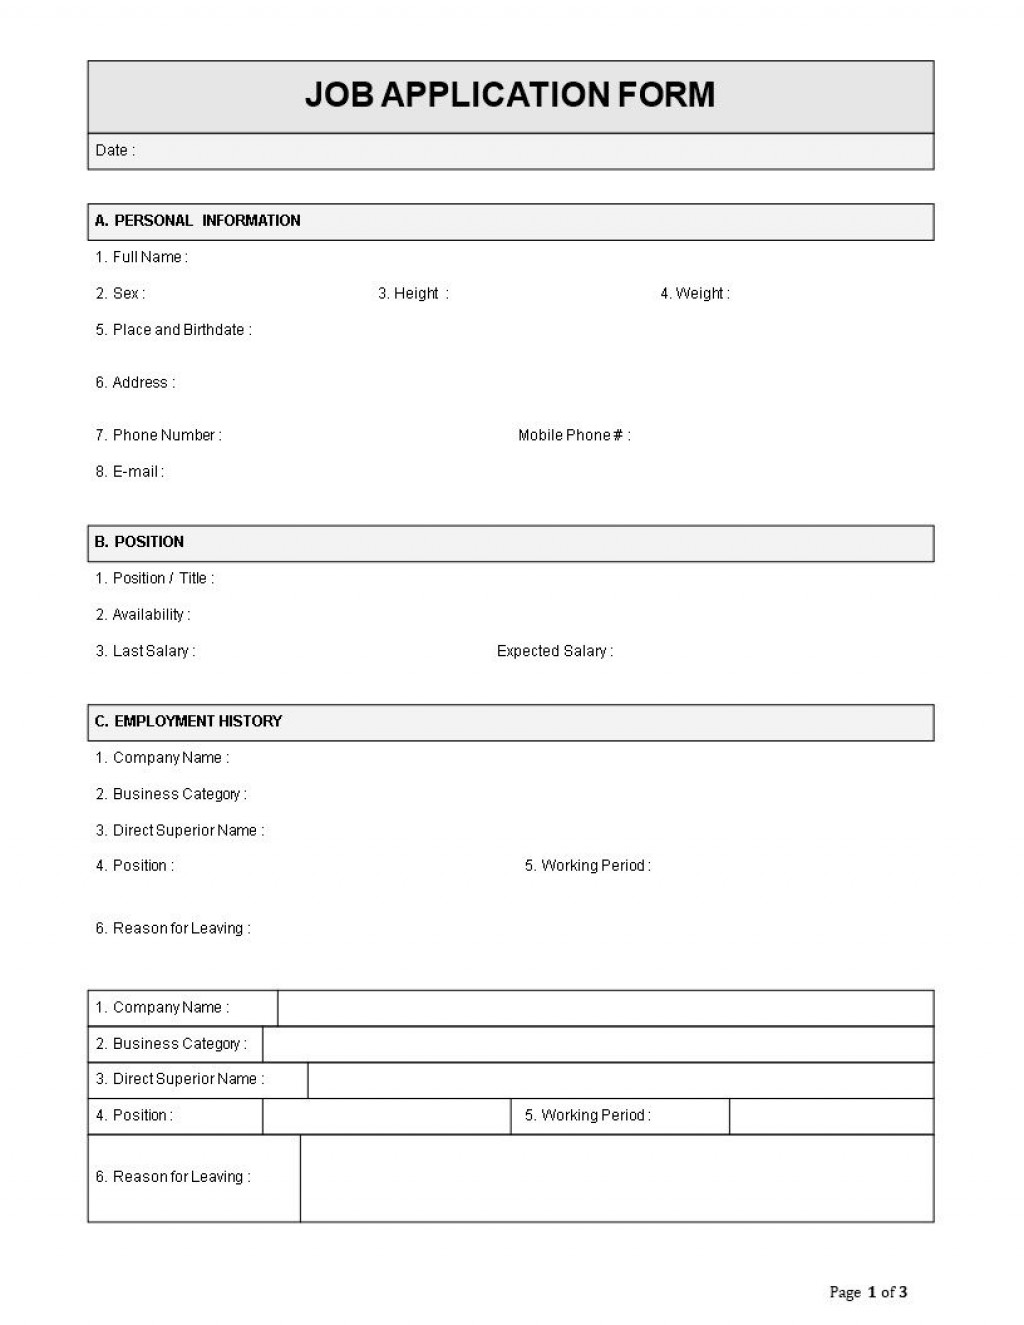 004 Outstanding Job Application Template Word High Resolution  Letter Sample File DocumentLarge